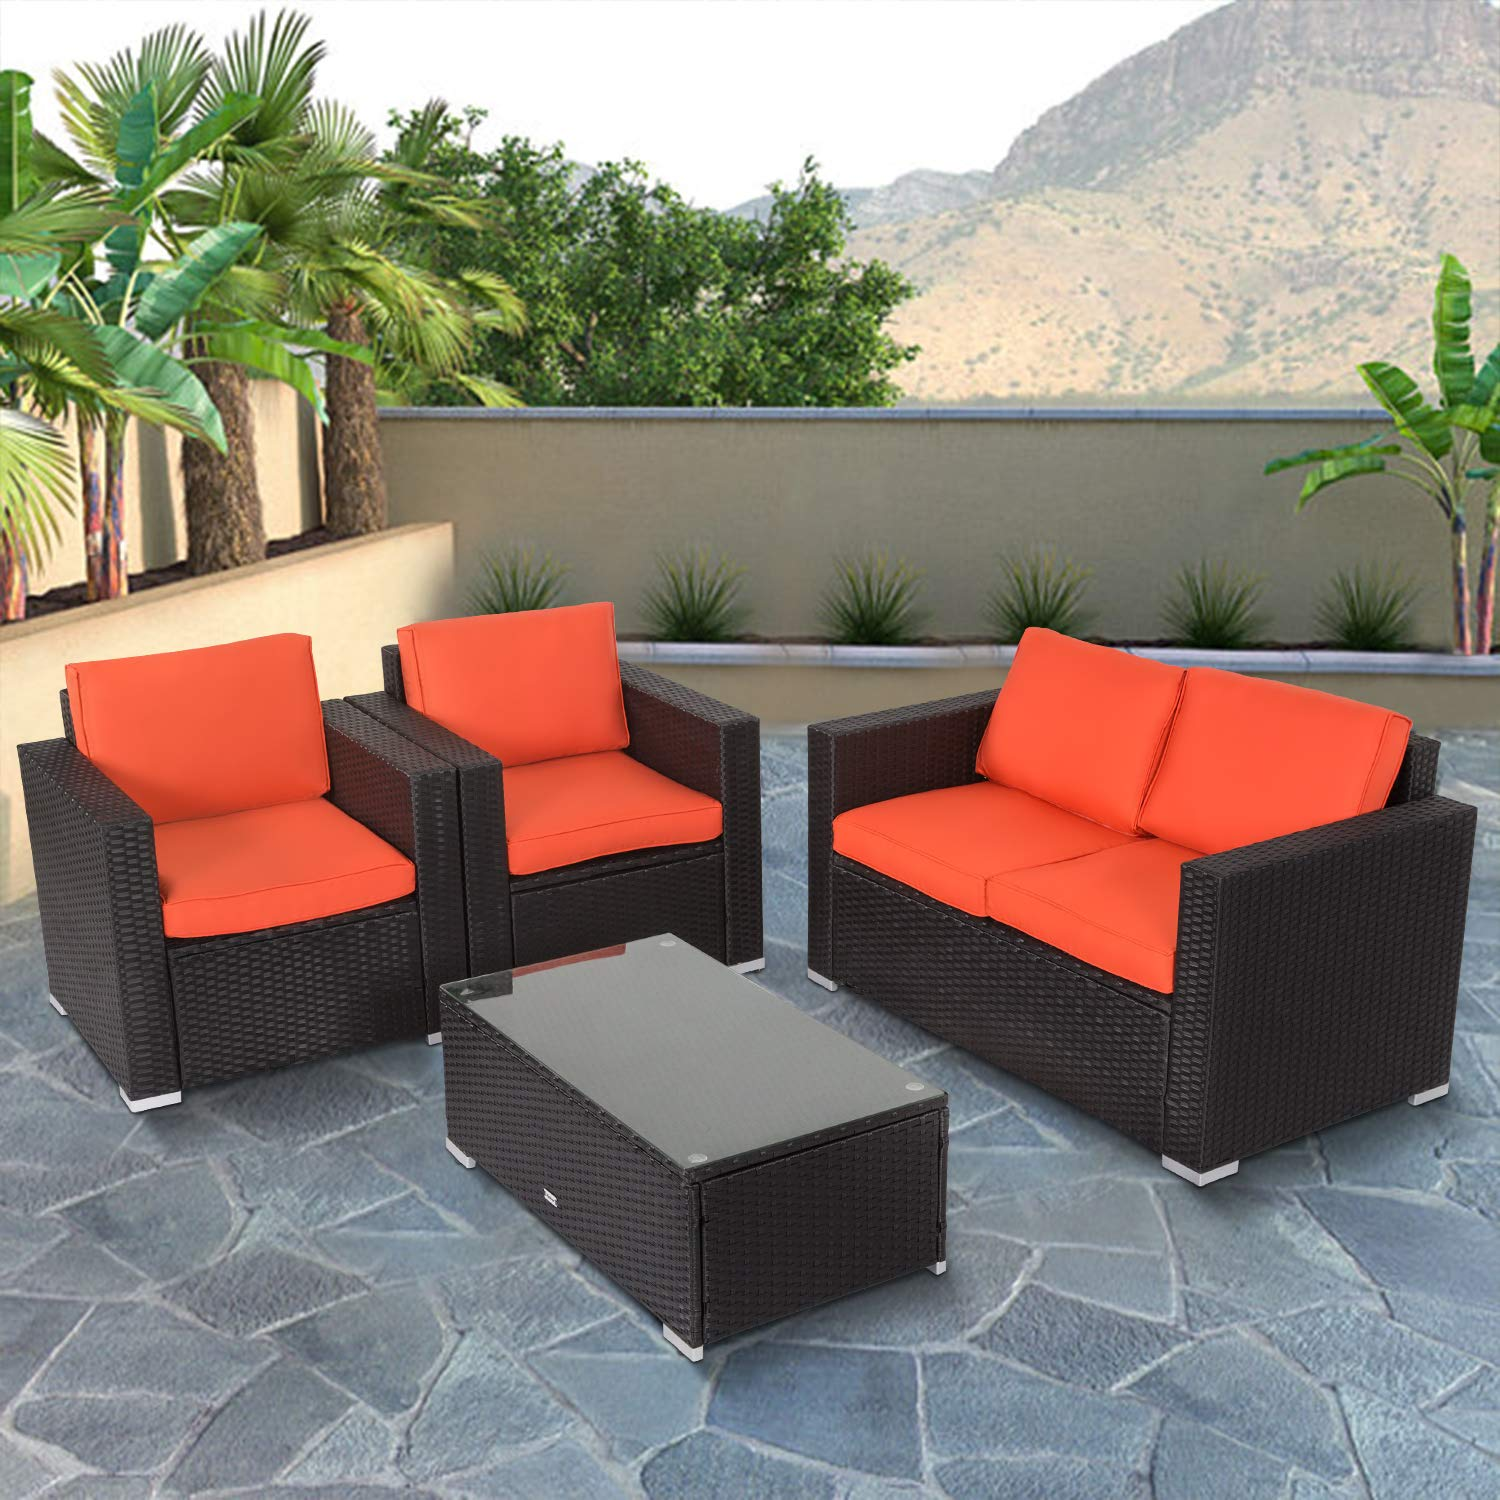 Amazon com kinbor new 4 pcs rattan patio outdoor furniture set garden lawn sofa sectional set black orange 4pcs garden outdoor